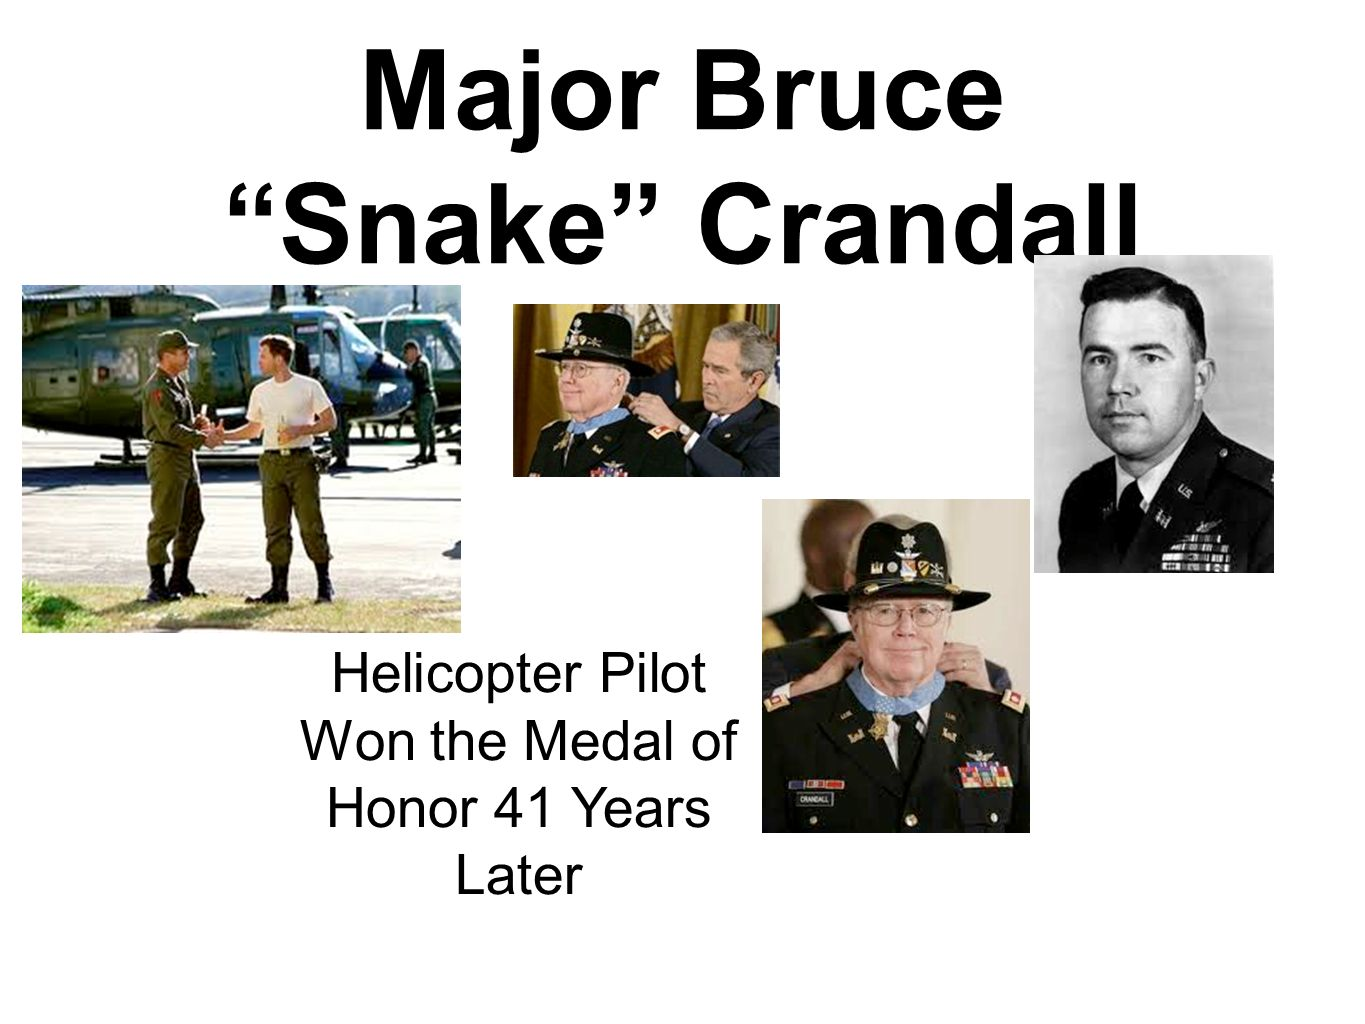 Major Bruce Snake Crandall Helicopter Pilot Won the Medal of Honor 41 Years Later